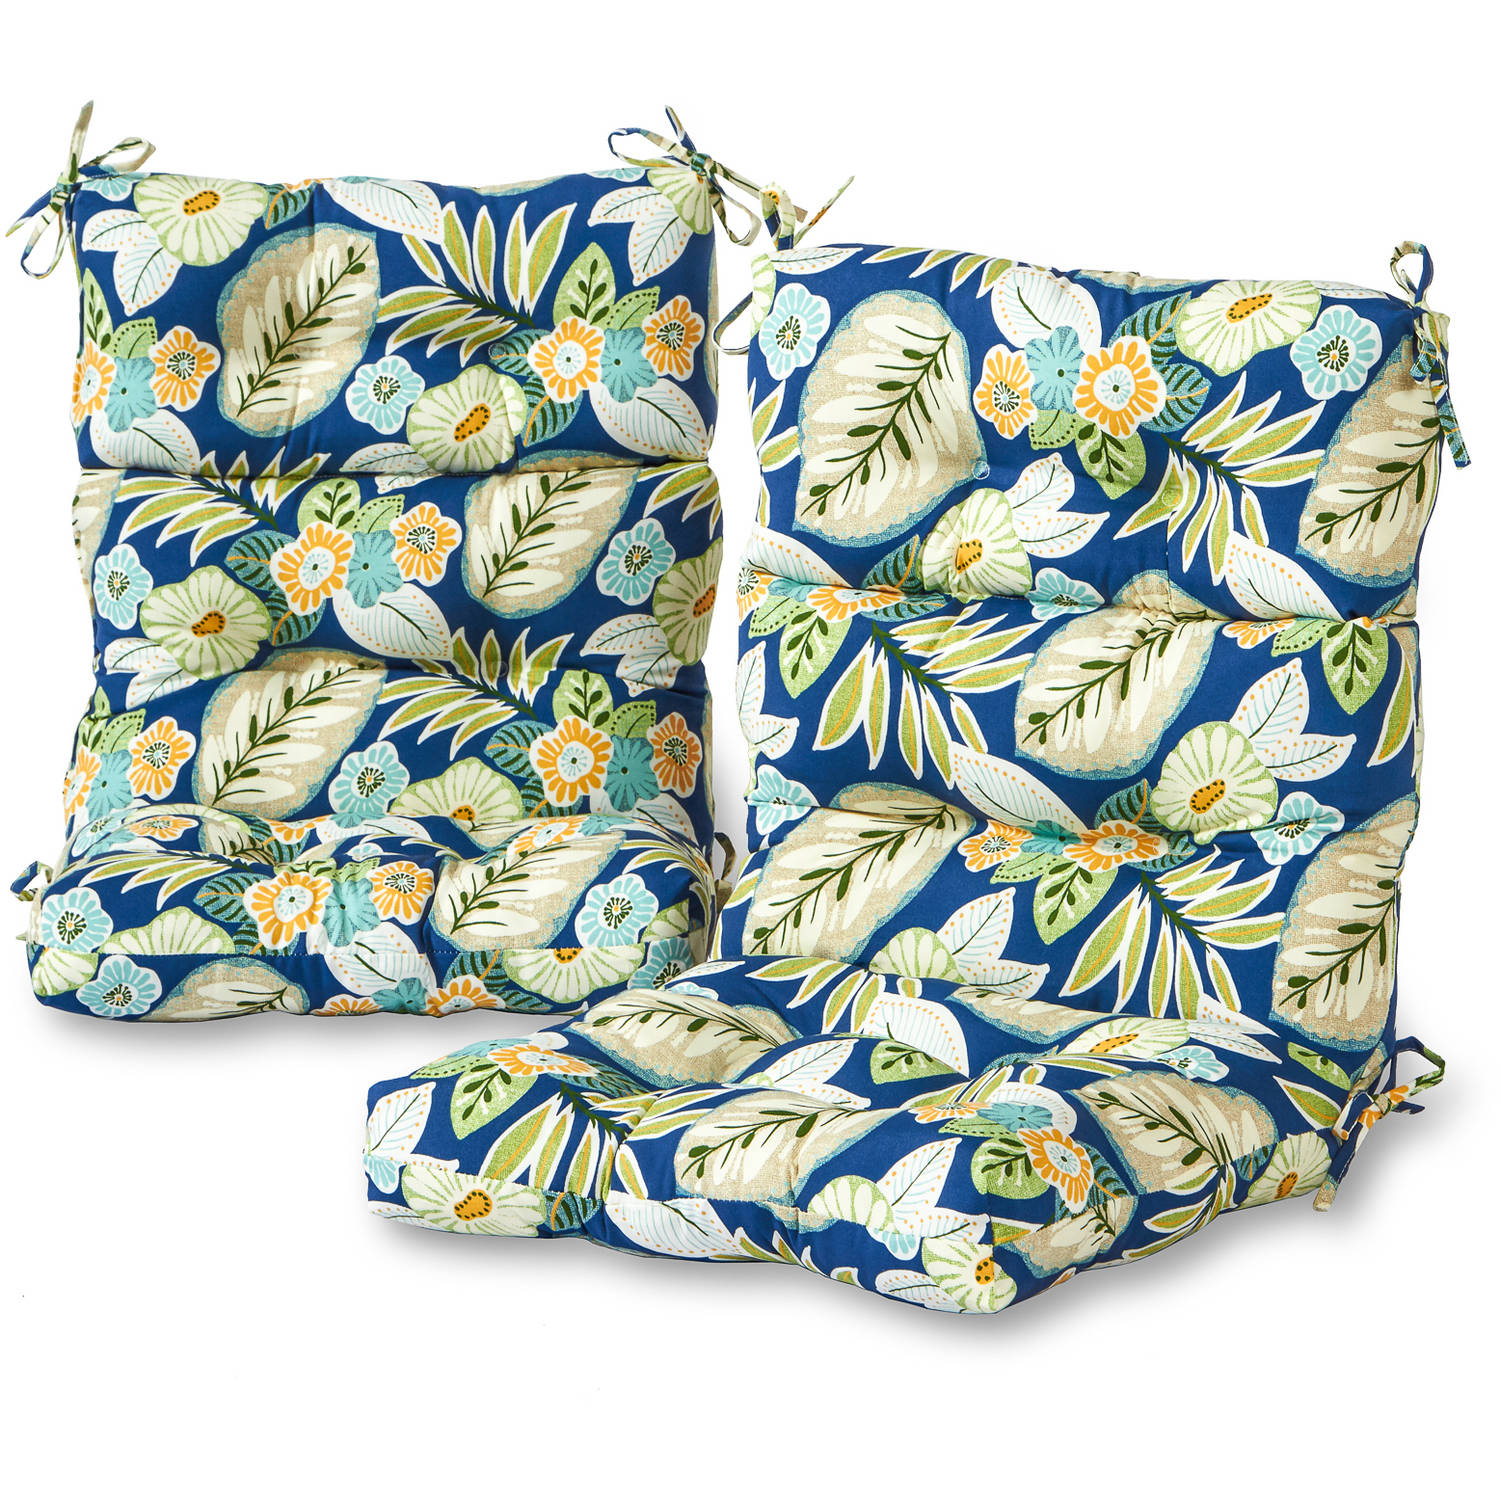 greendale home fashions outdoor high back chair cushions set of 2